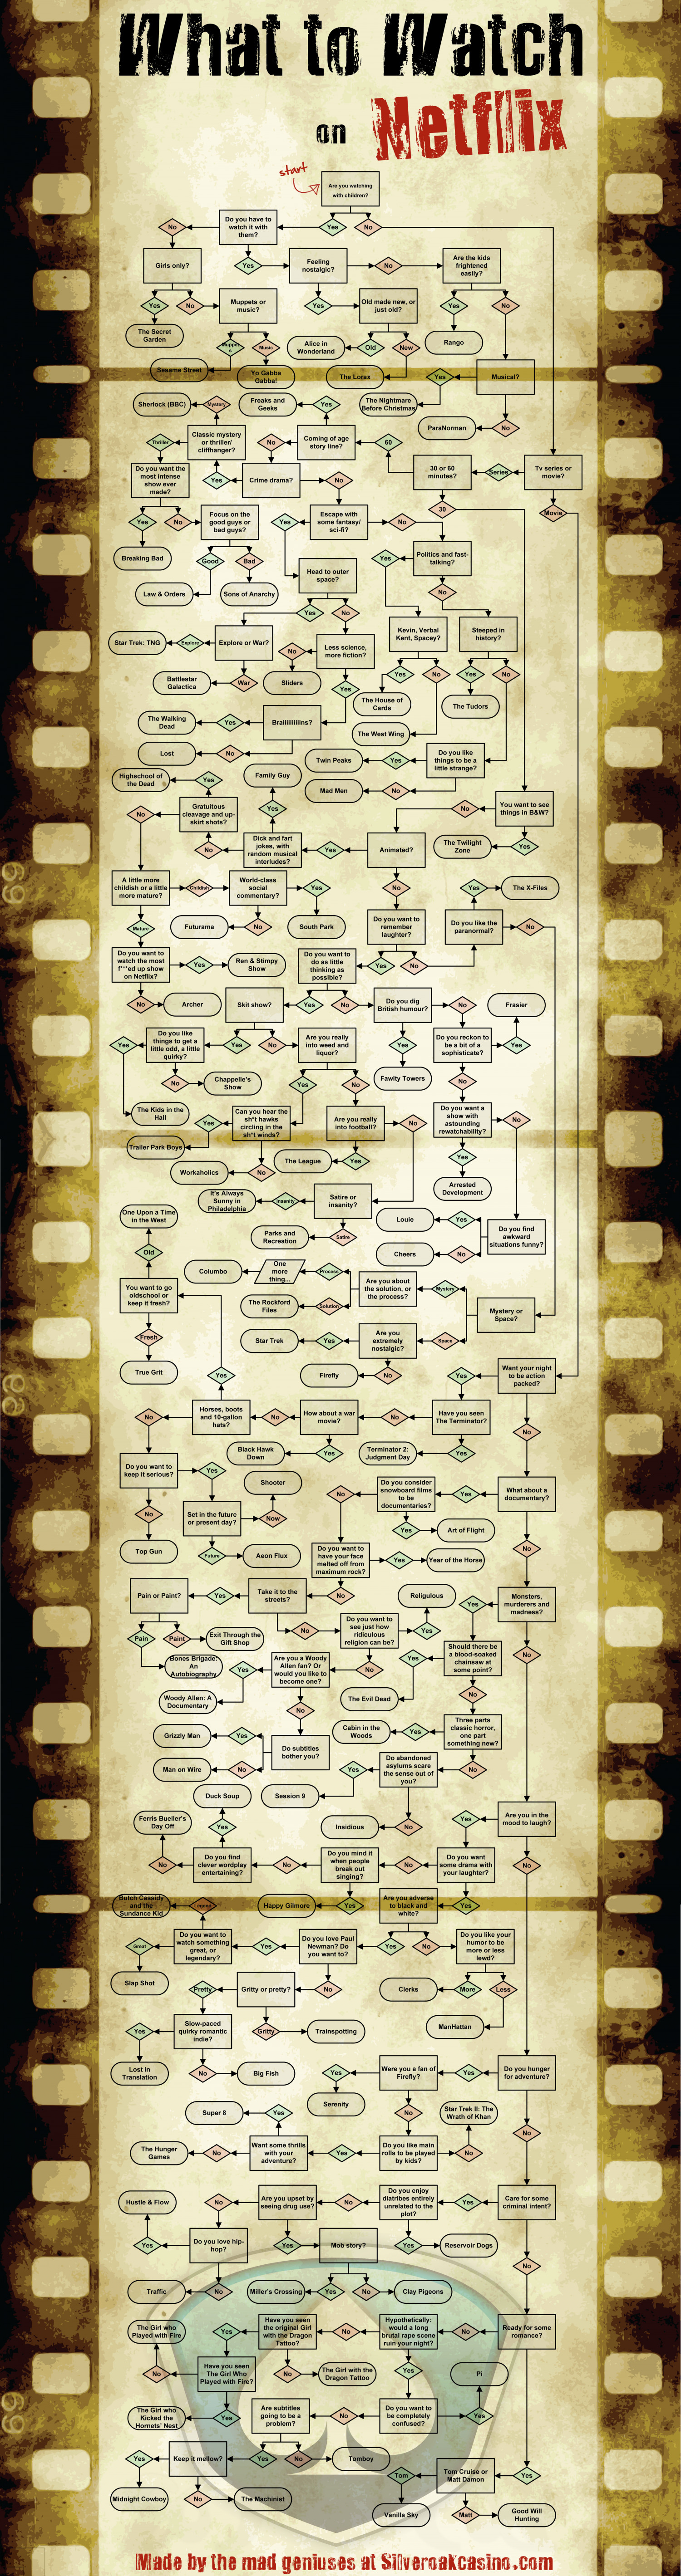 What to Watch on Netflix Infographic